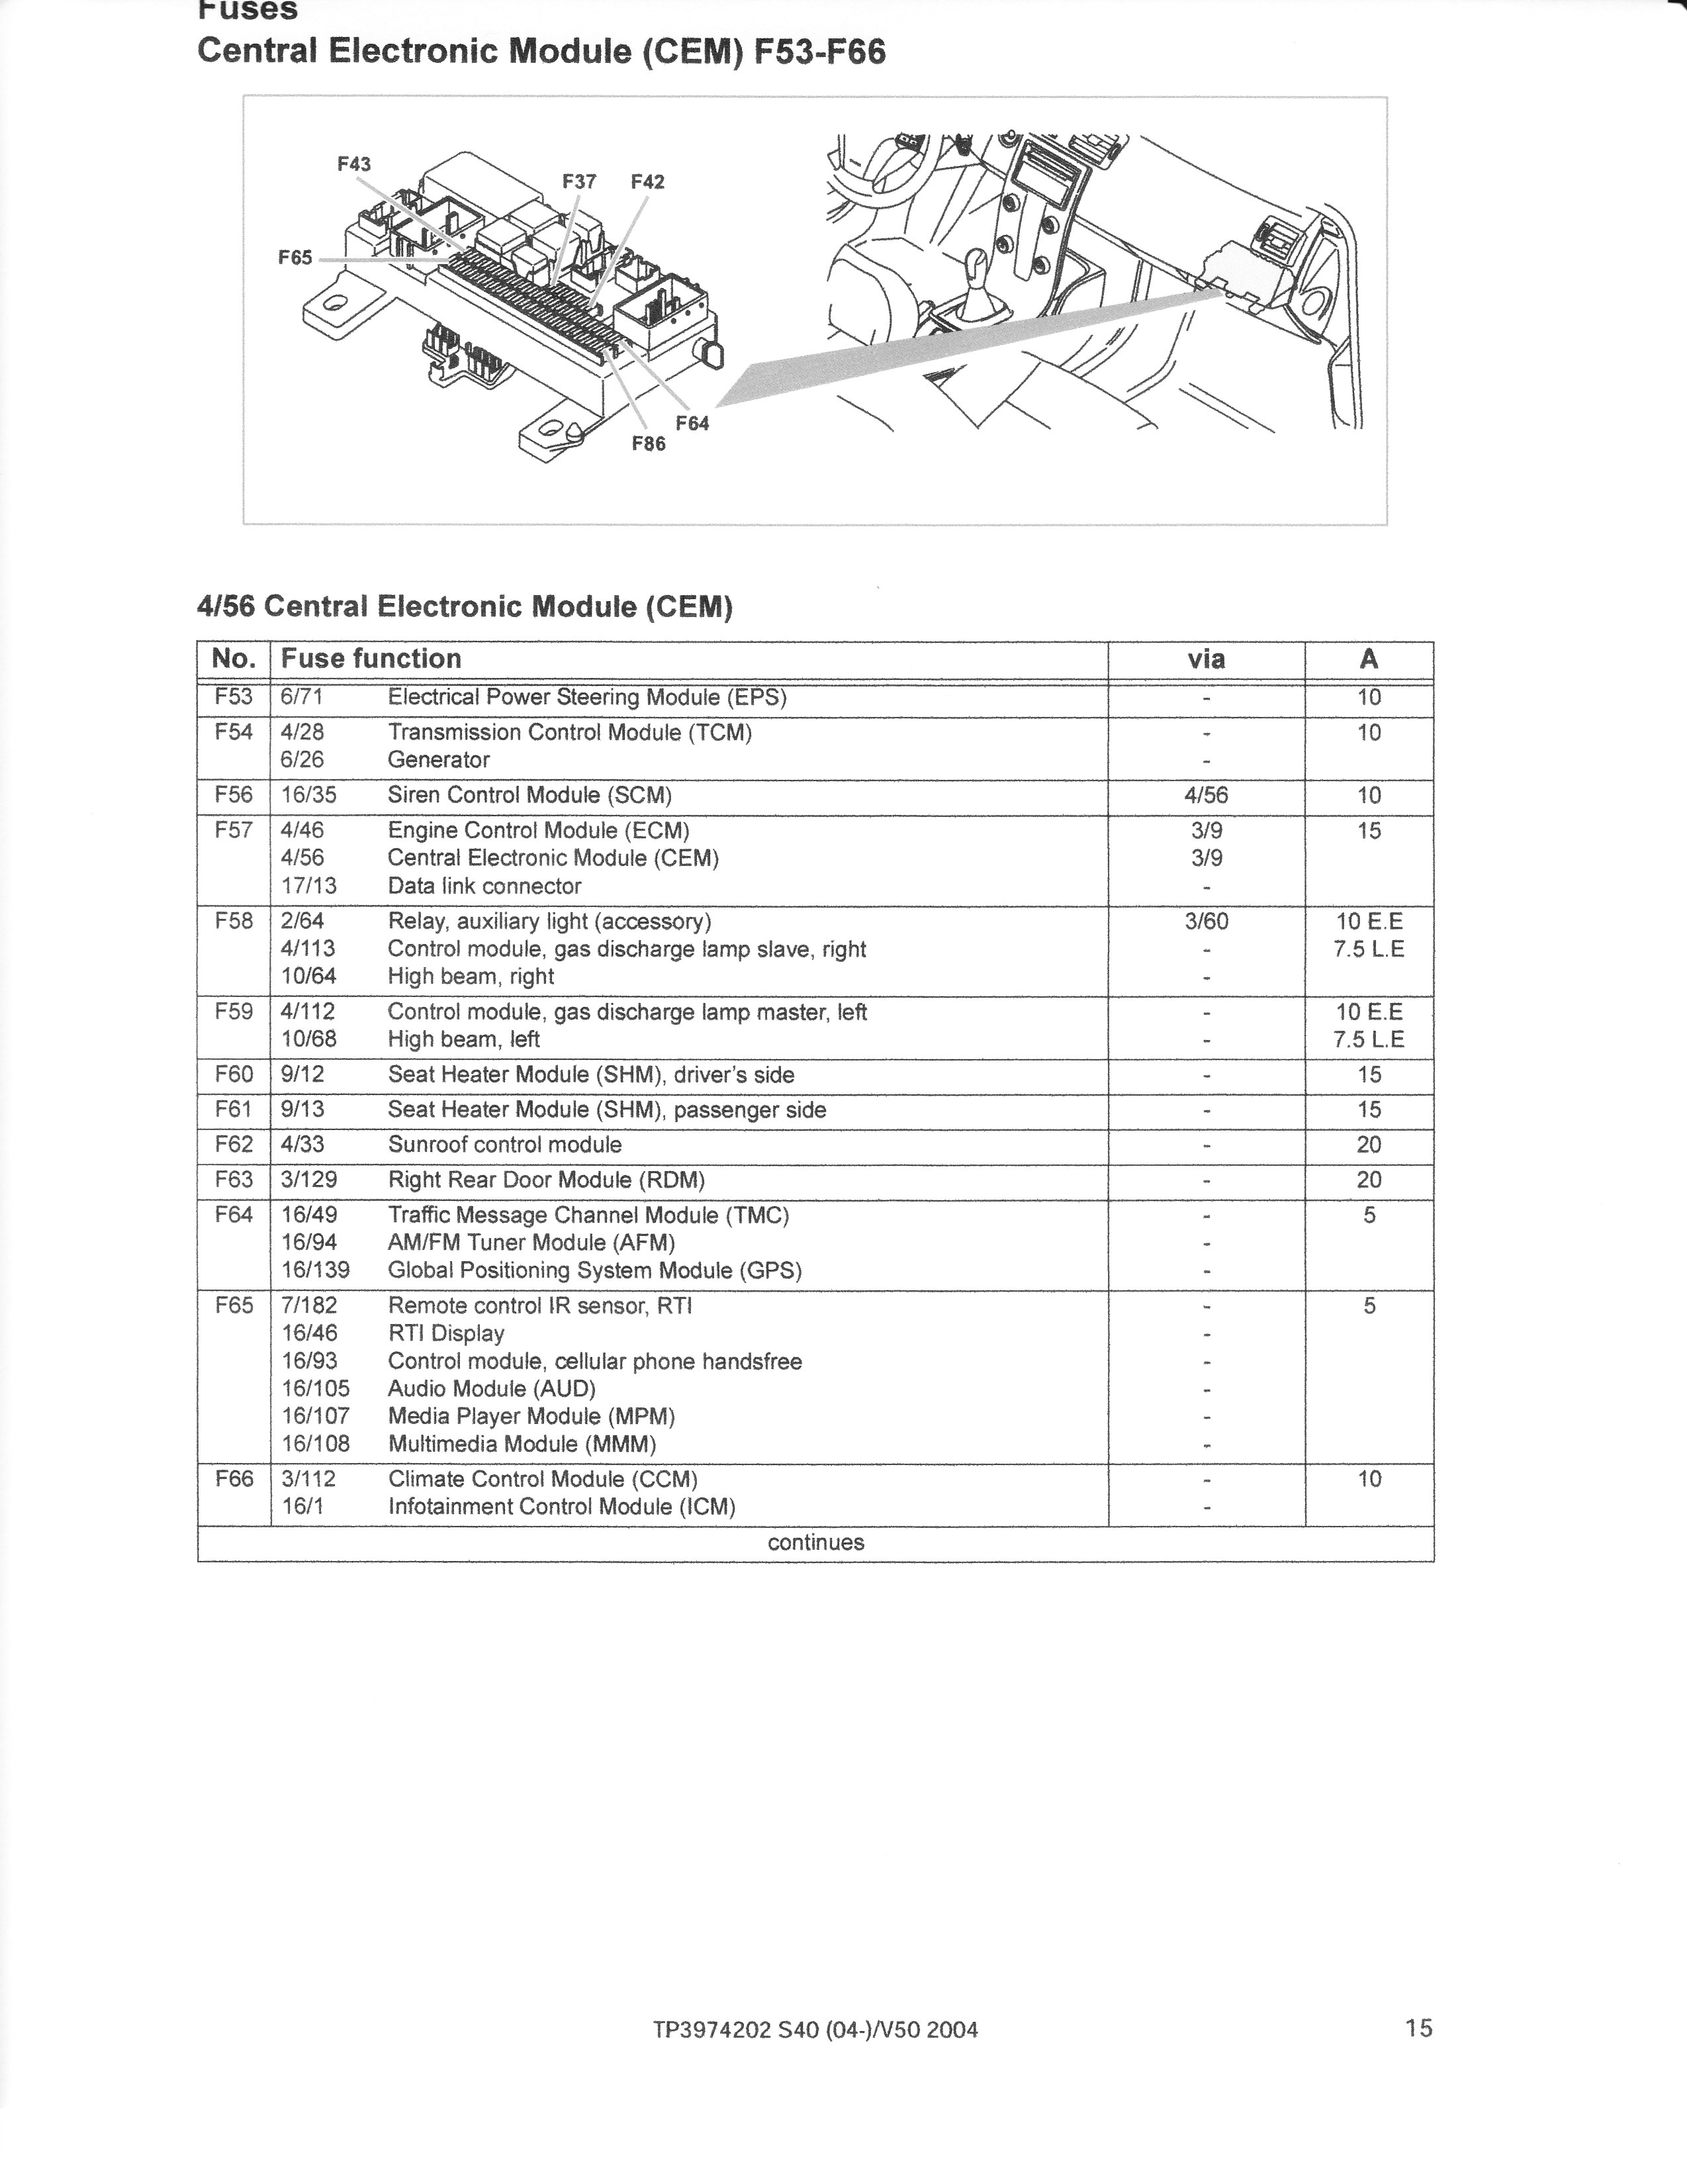 2004 Volvo Xc90 Fuse Box Diagram Great Design Of Wiring Engine Relay 2003 Free Image 2000 S40 Location Wagon